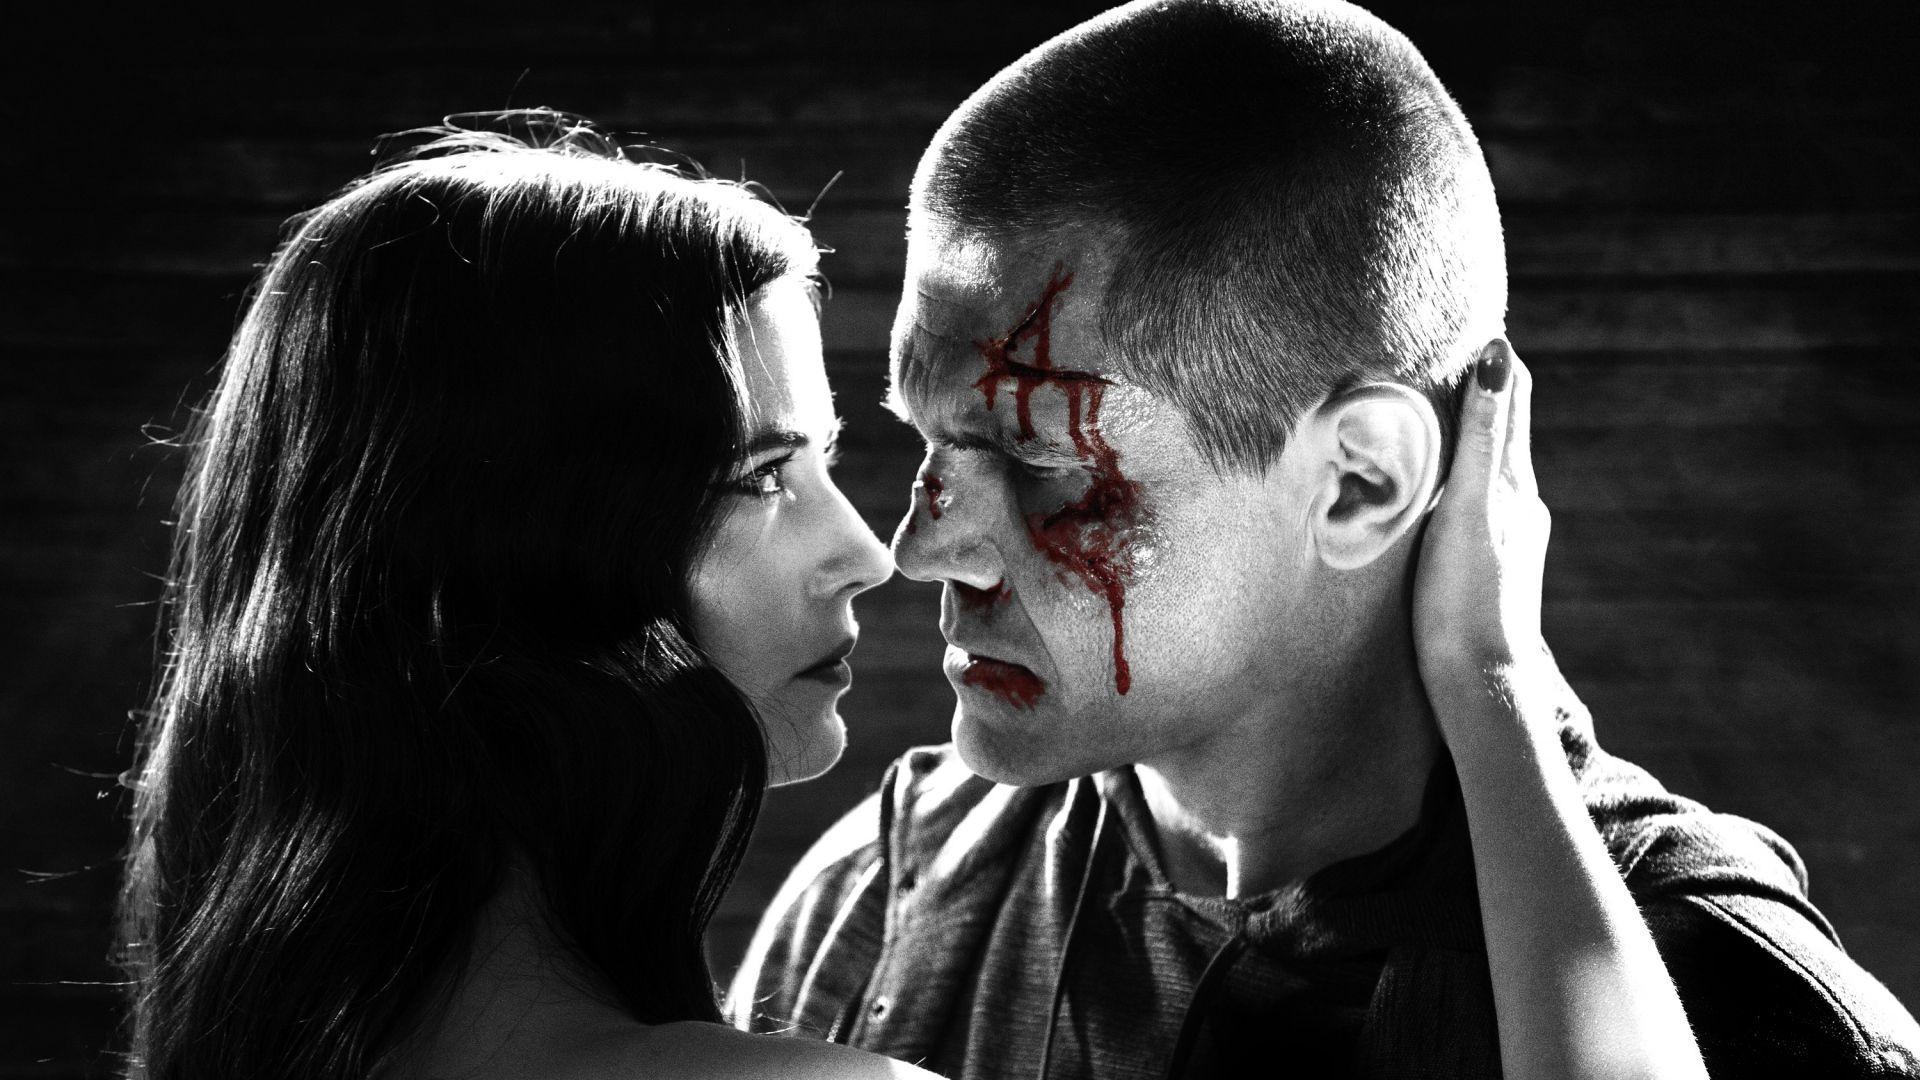 Download Wallpaper 1920x1080 Sin city a dame to kill for, Dwight ...